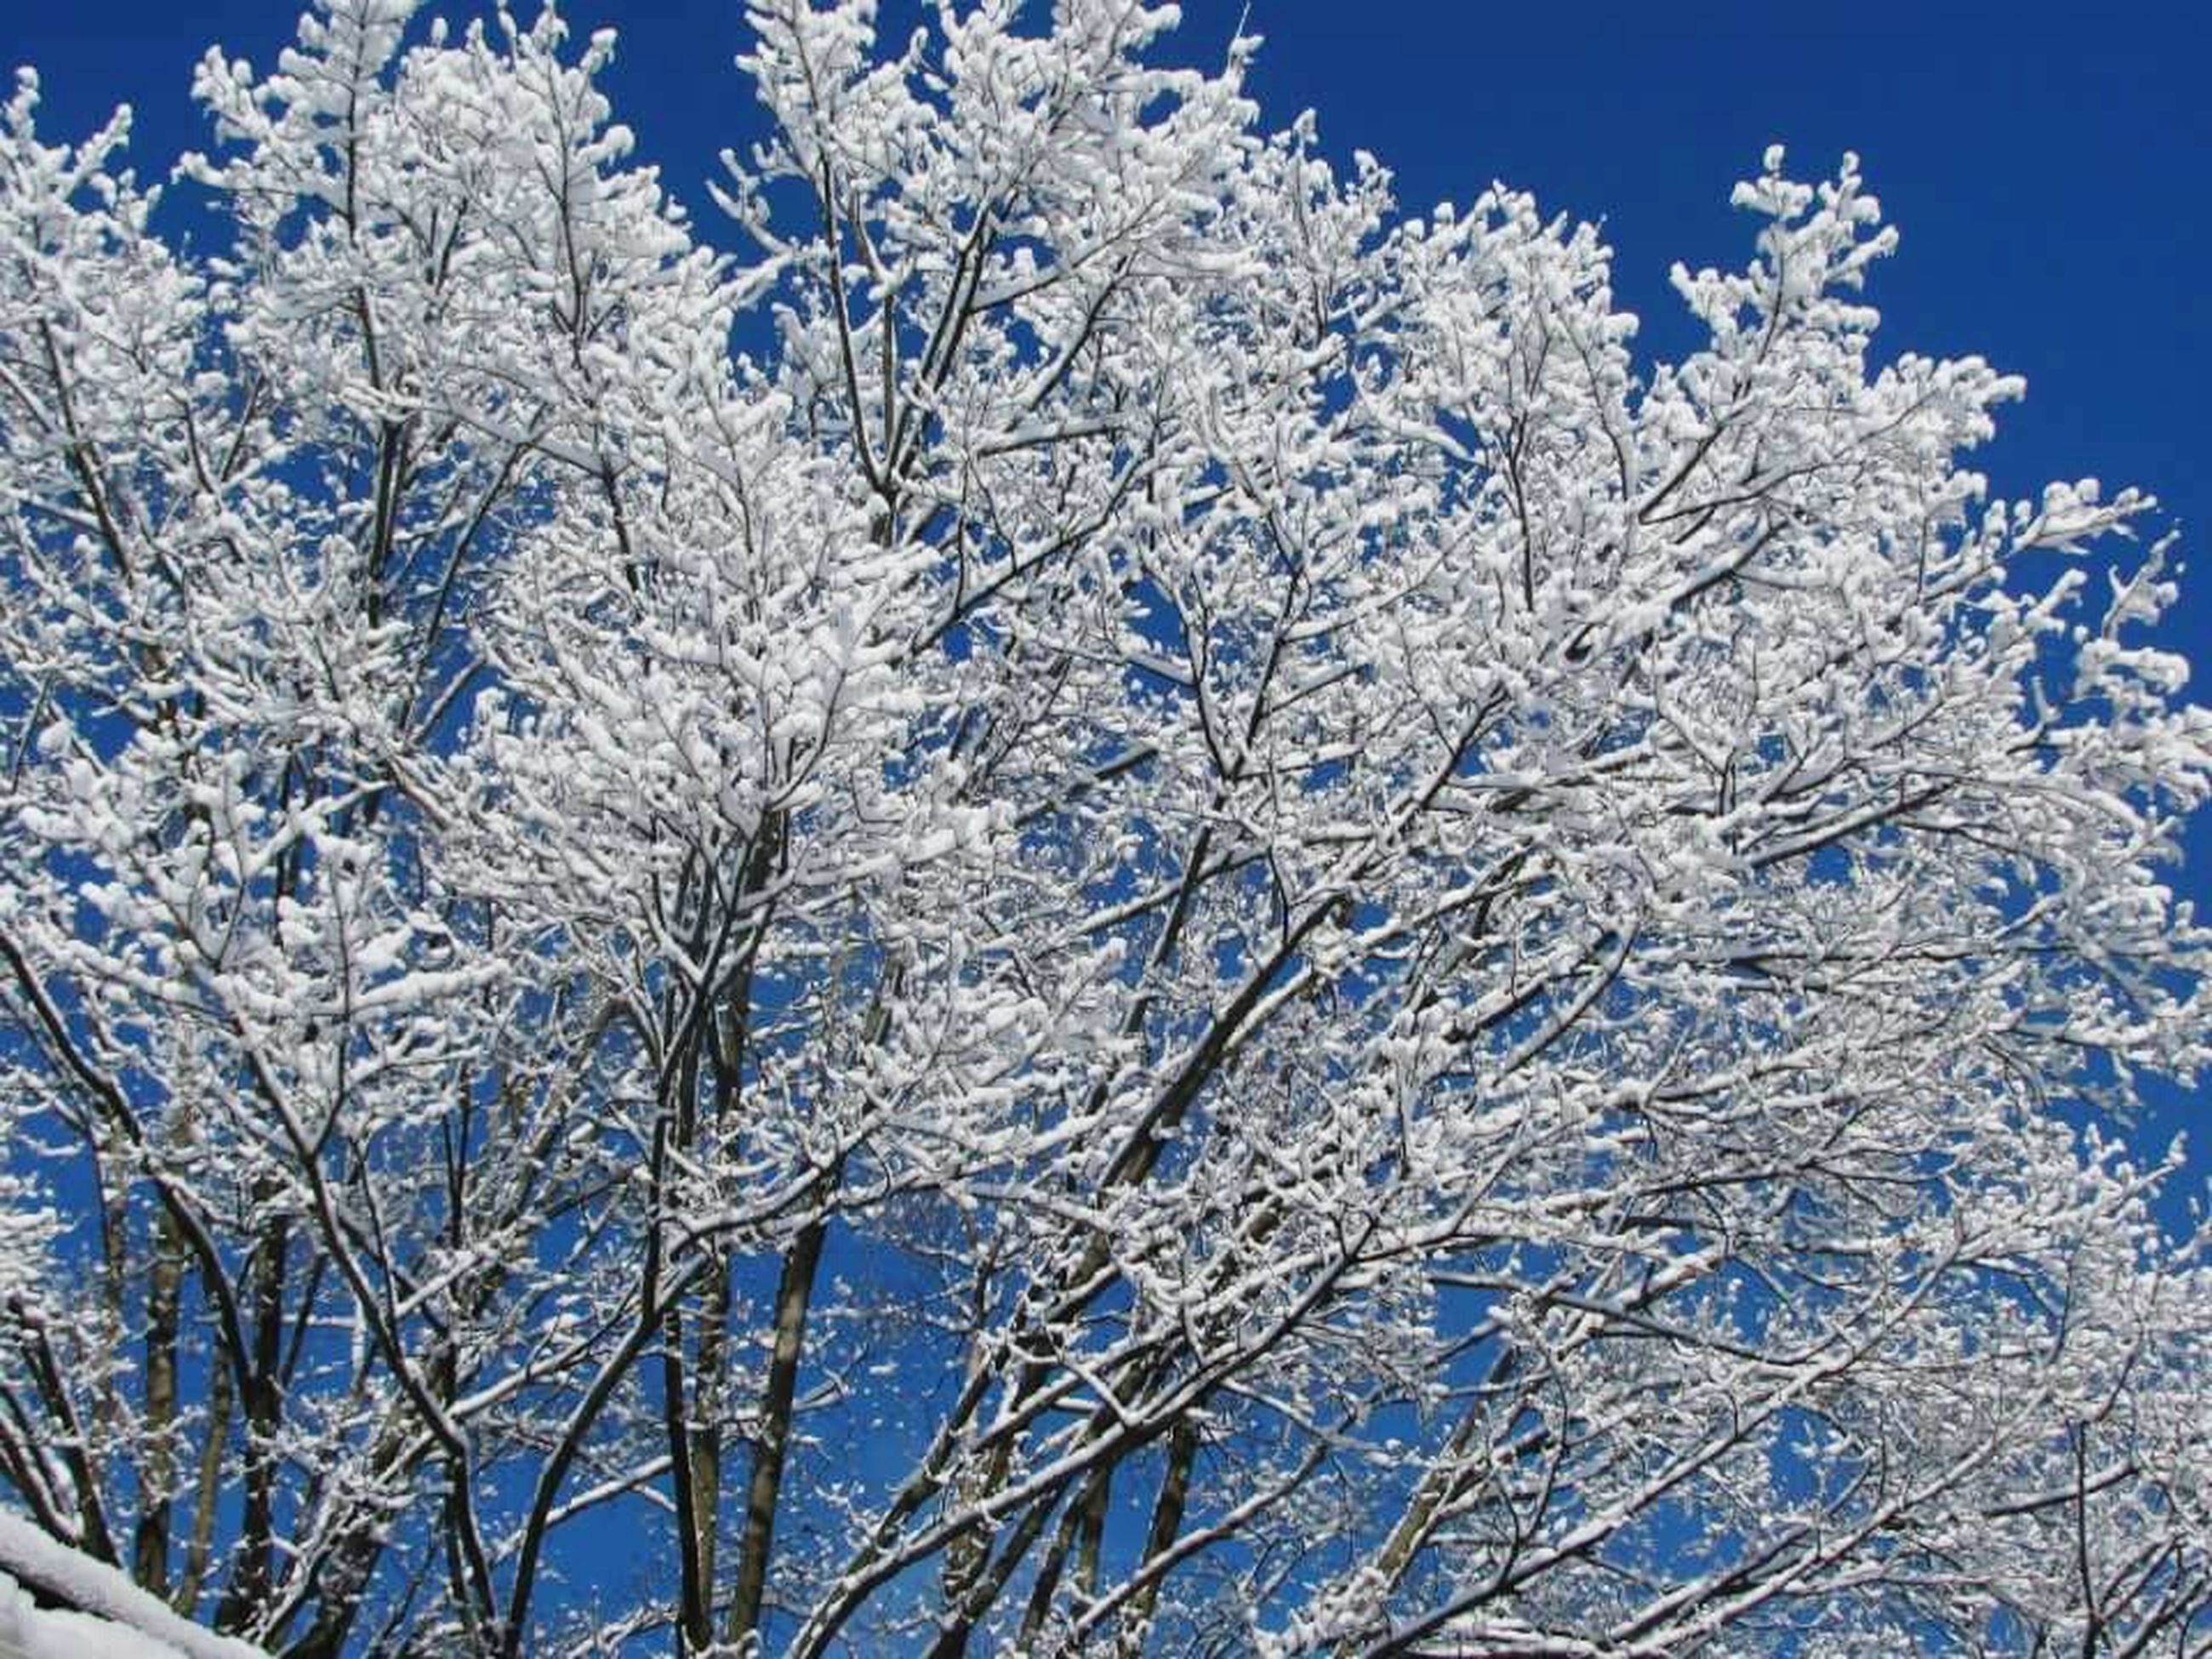 snow, winter, cold temperature, blue, season, white color, clear sky, nature, beauty in nature, tree, low angle view, bare tree, branch, growth, tranquility, frozen, flower, day, weather, outdoors